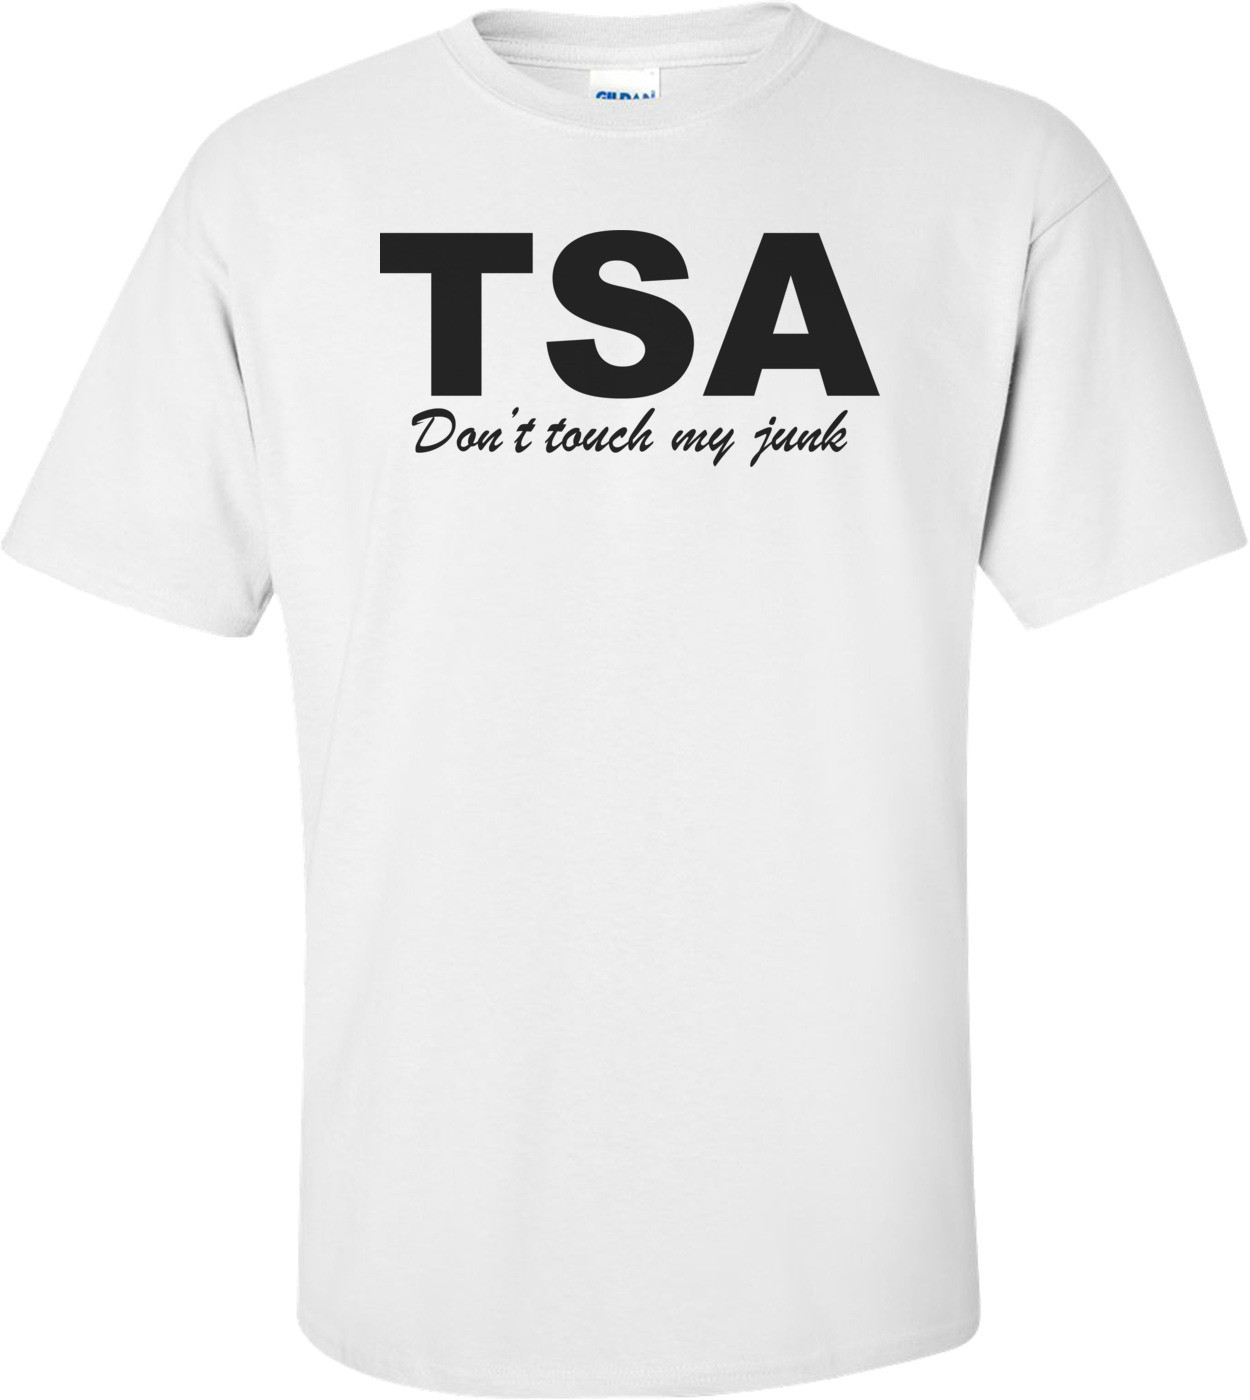 Tsa - Don't Touch My Junk T-Shirt